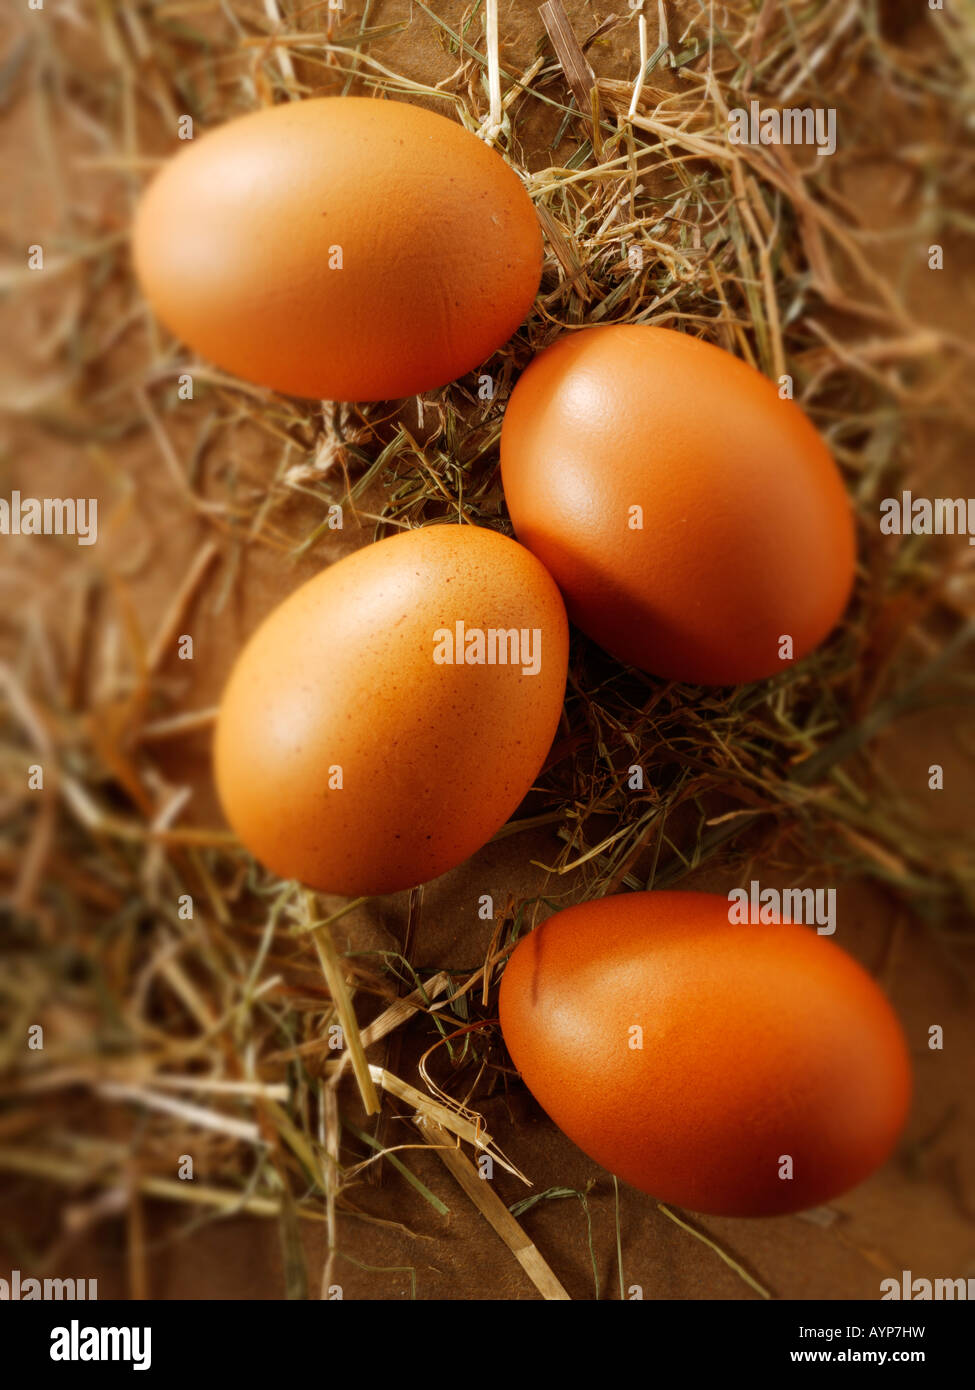 Burford Brown organic free range chicken eggs - Stock Image